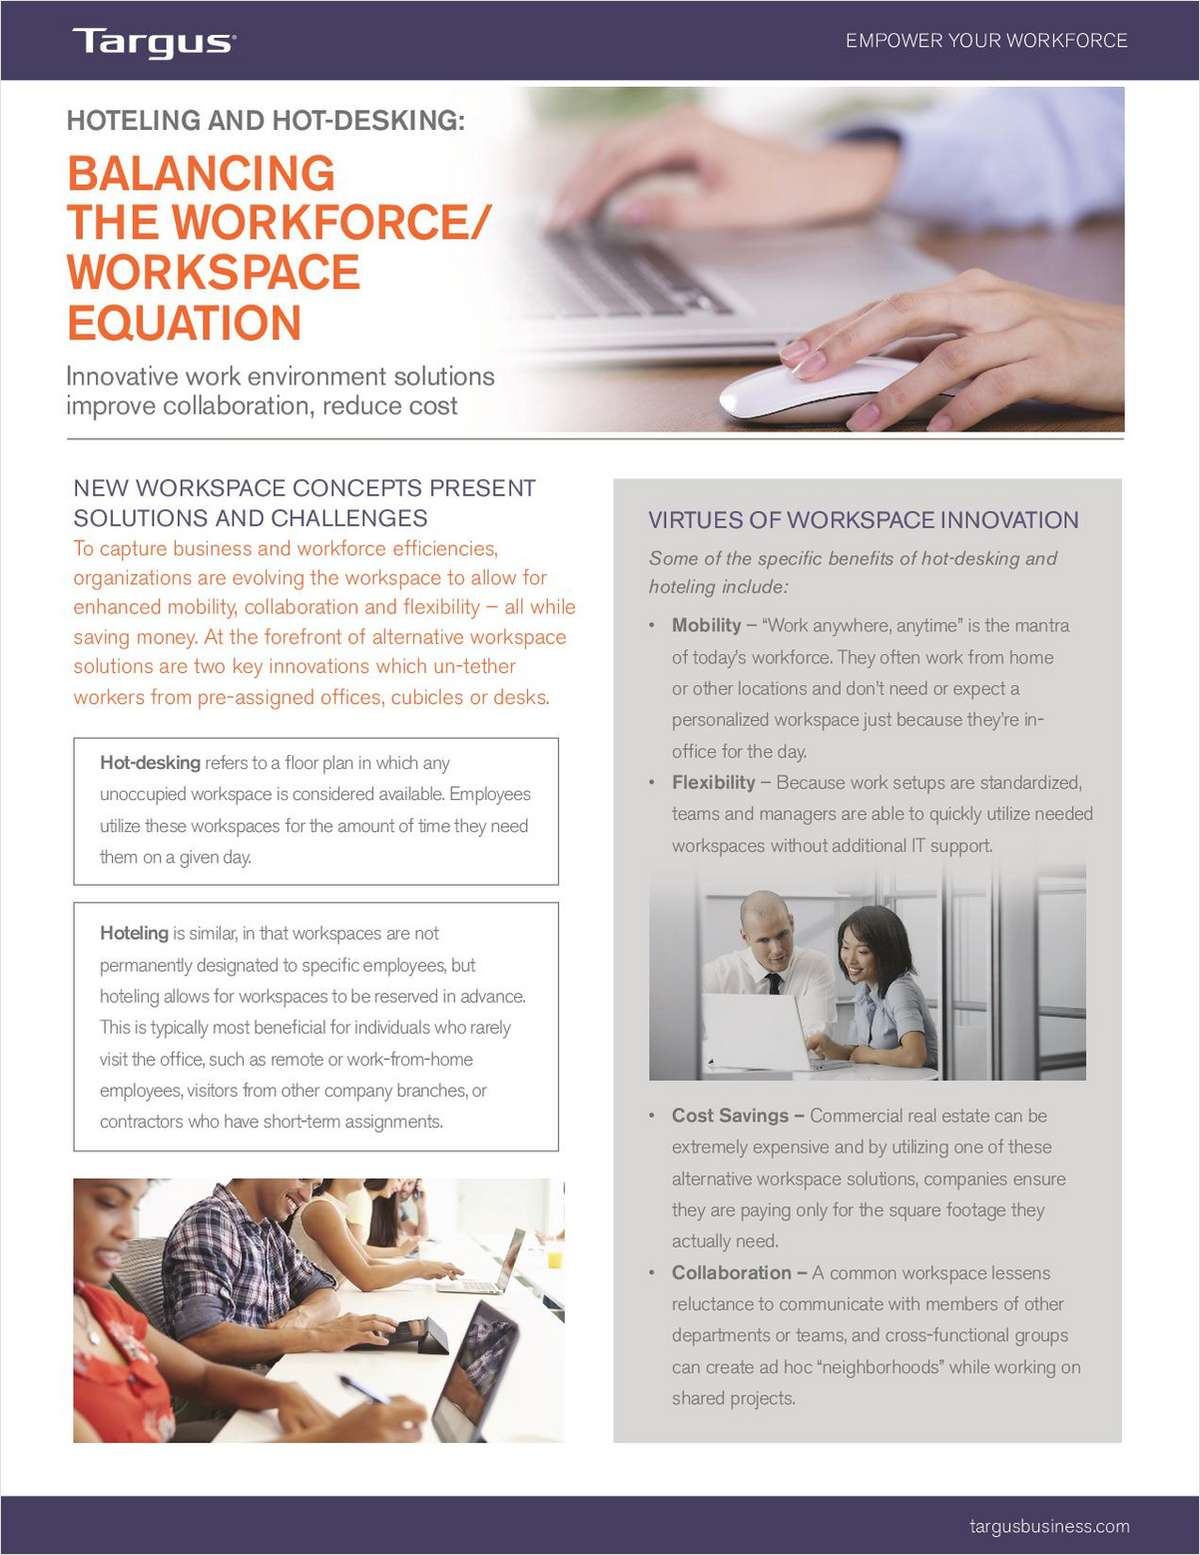 2 Ways to Enhance the Workspace and Reduce Costs